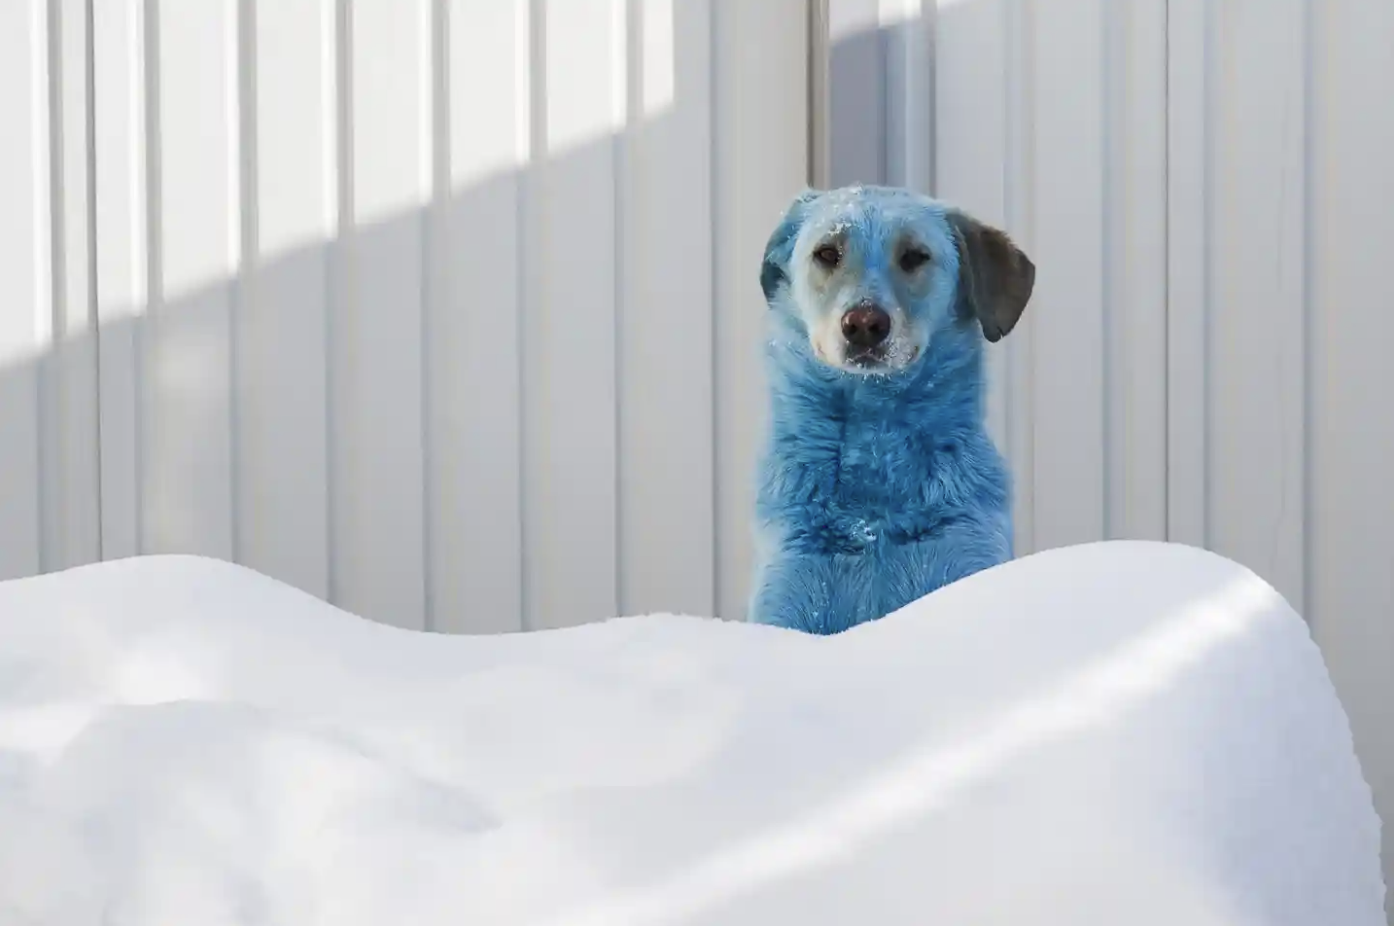 Dzerzhinsk, Russia: thirteen stray dogs were found unintentionally dyed blue due tot he exposure of prussic acid near a glass factory.